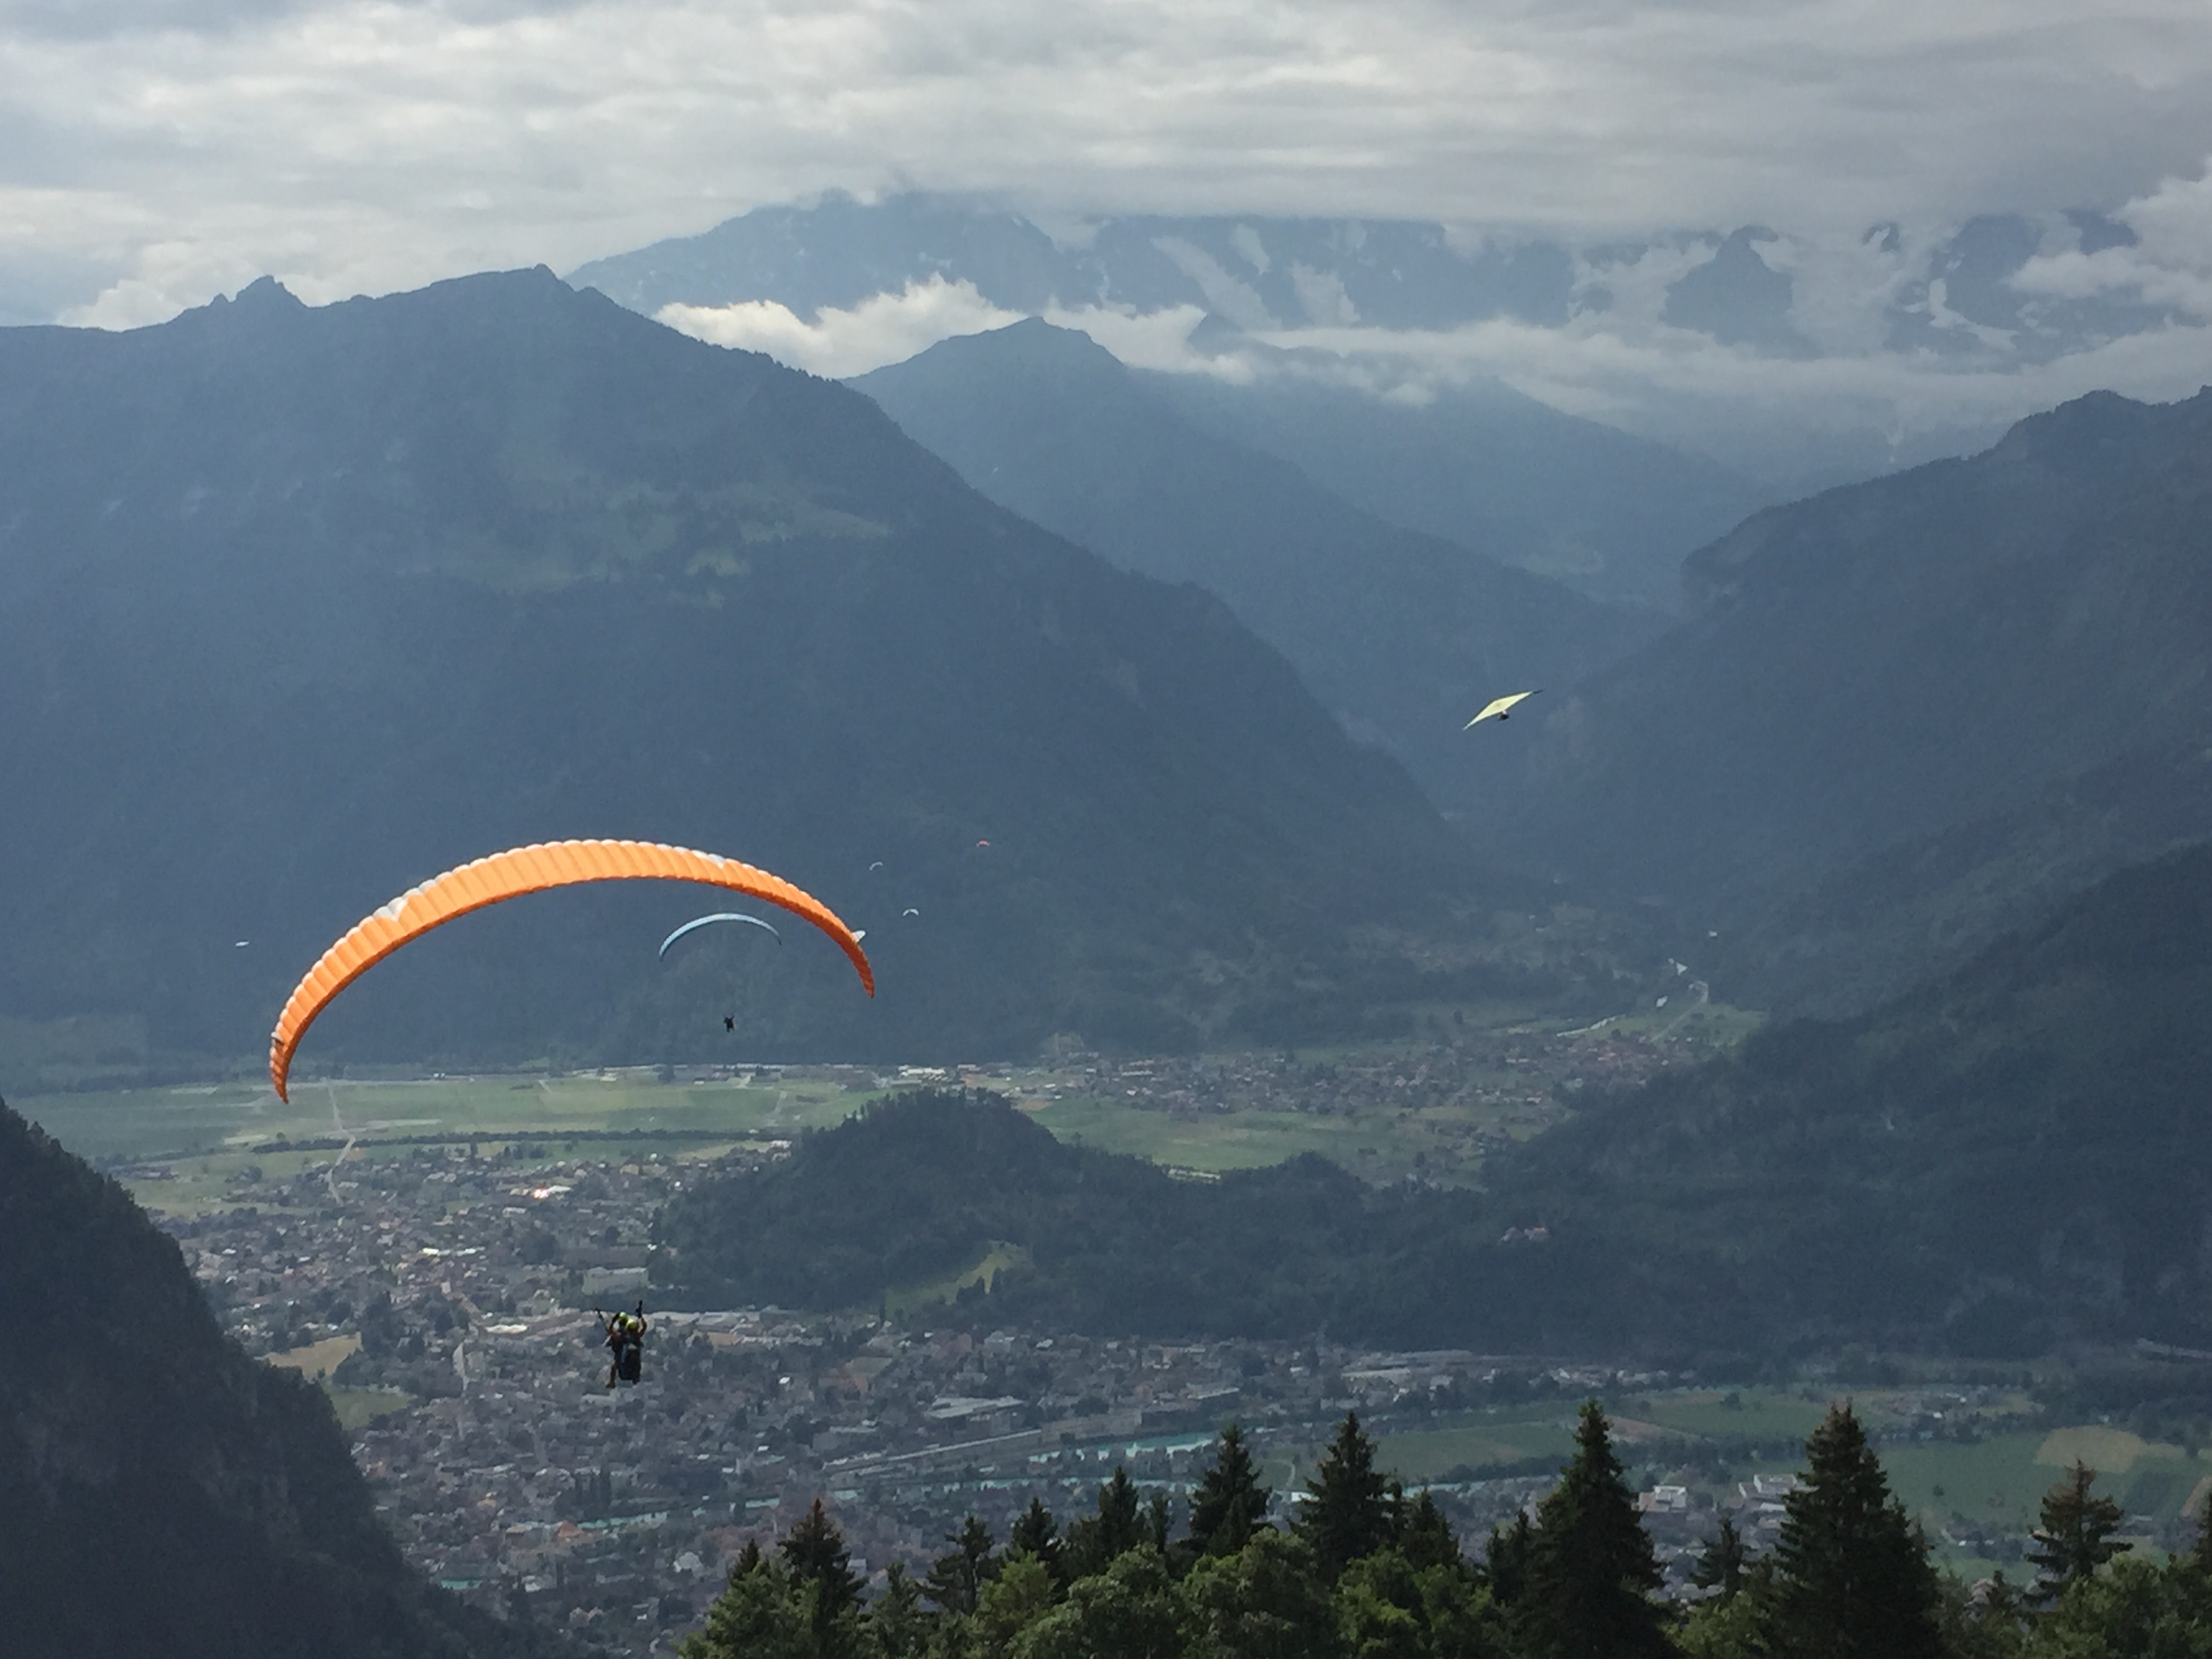 Watching other paragliders take off 2